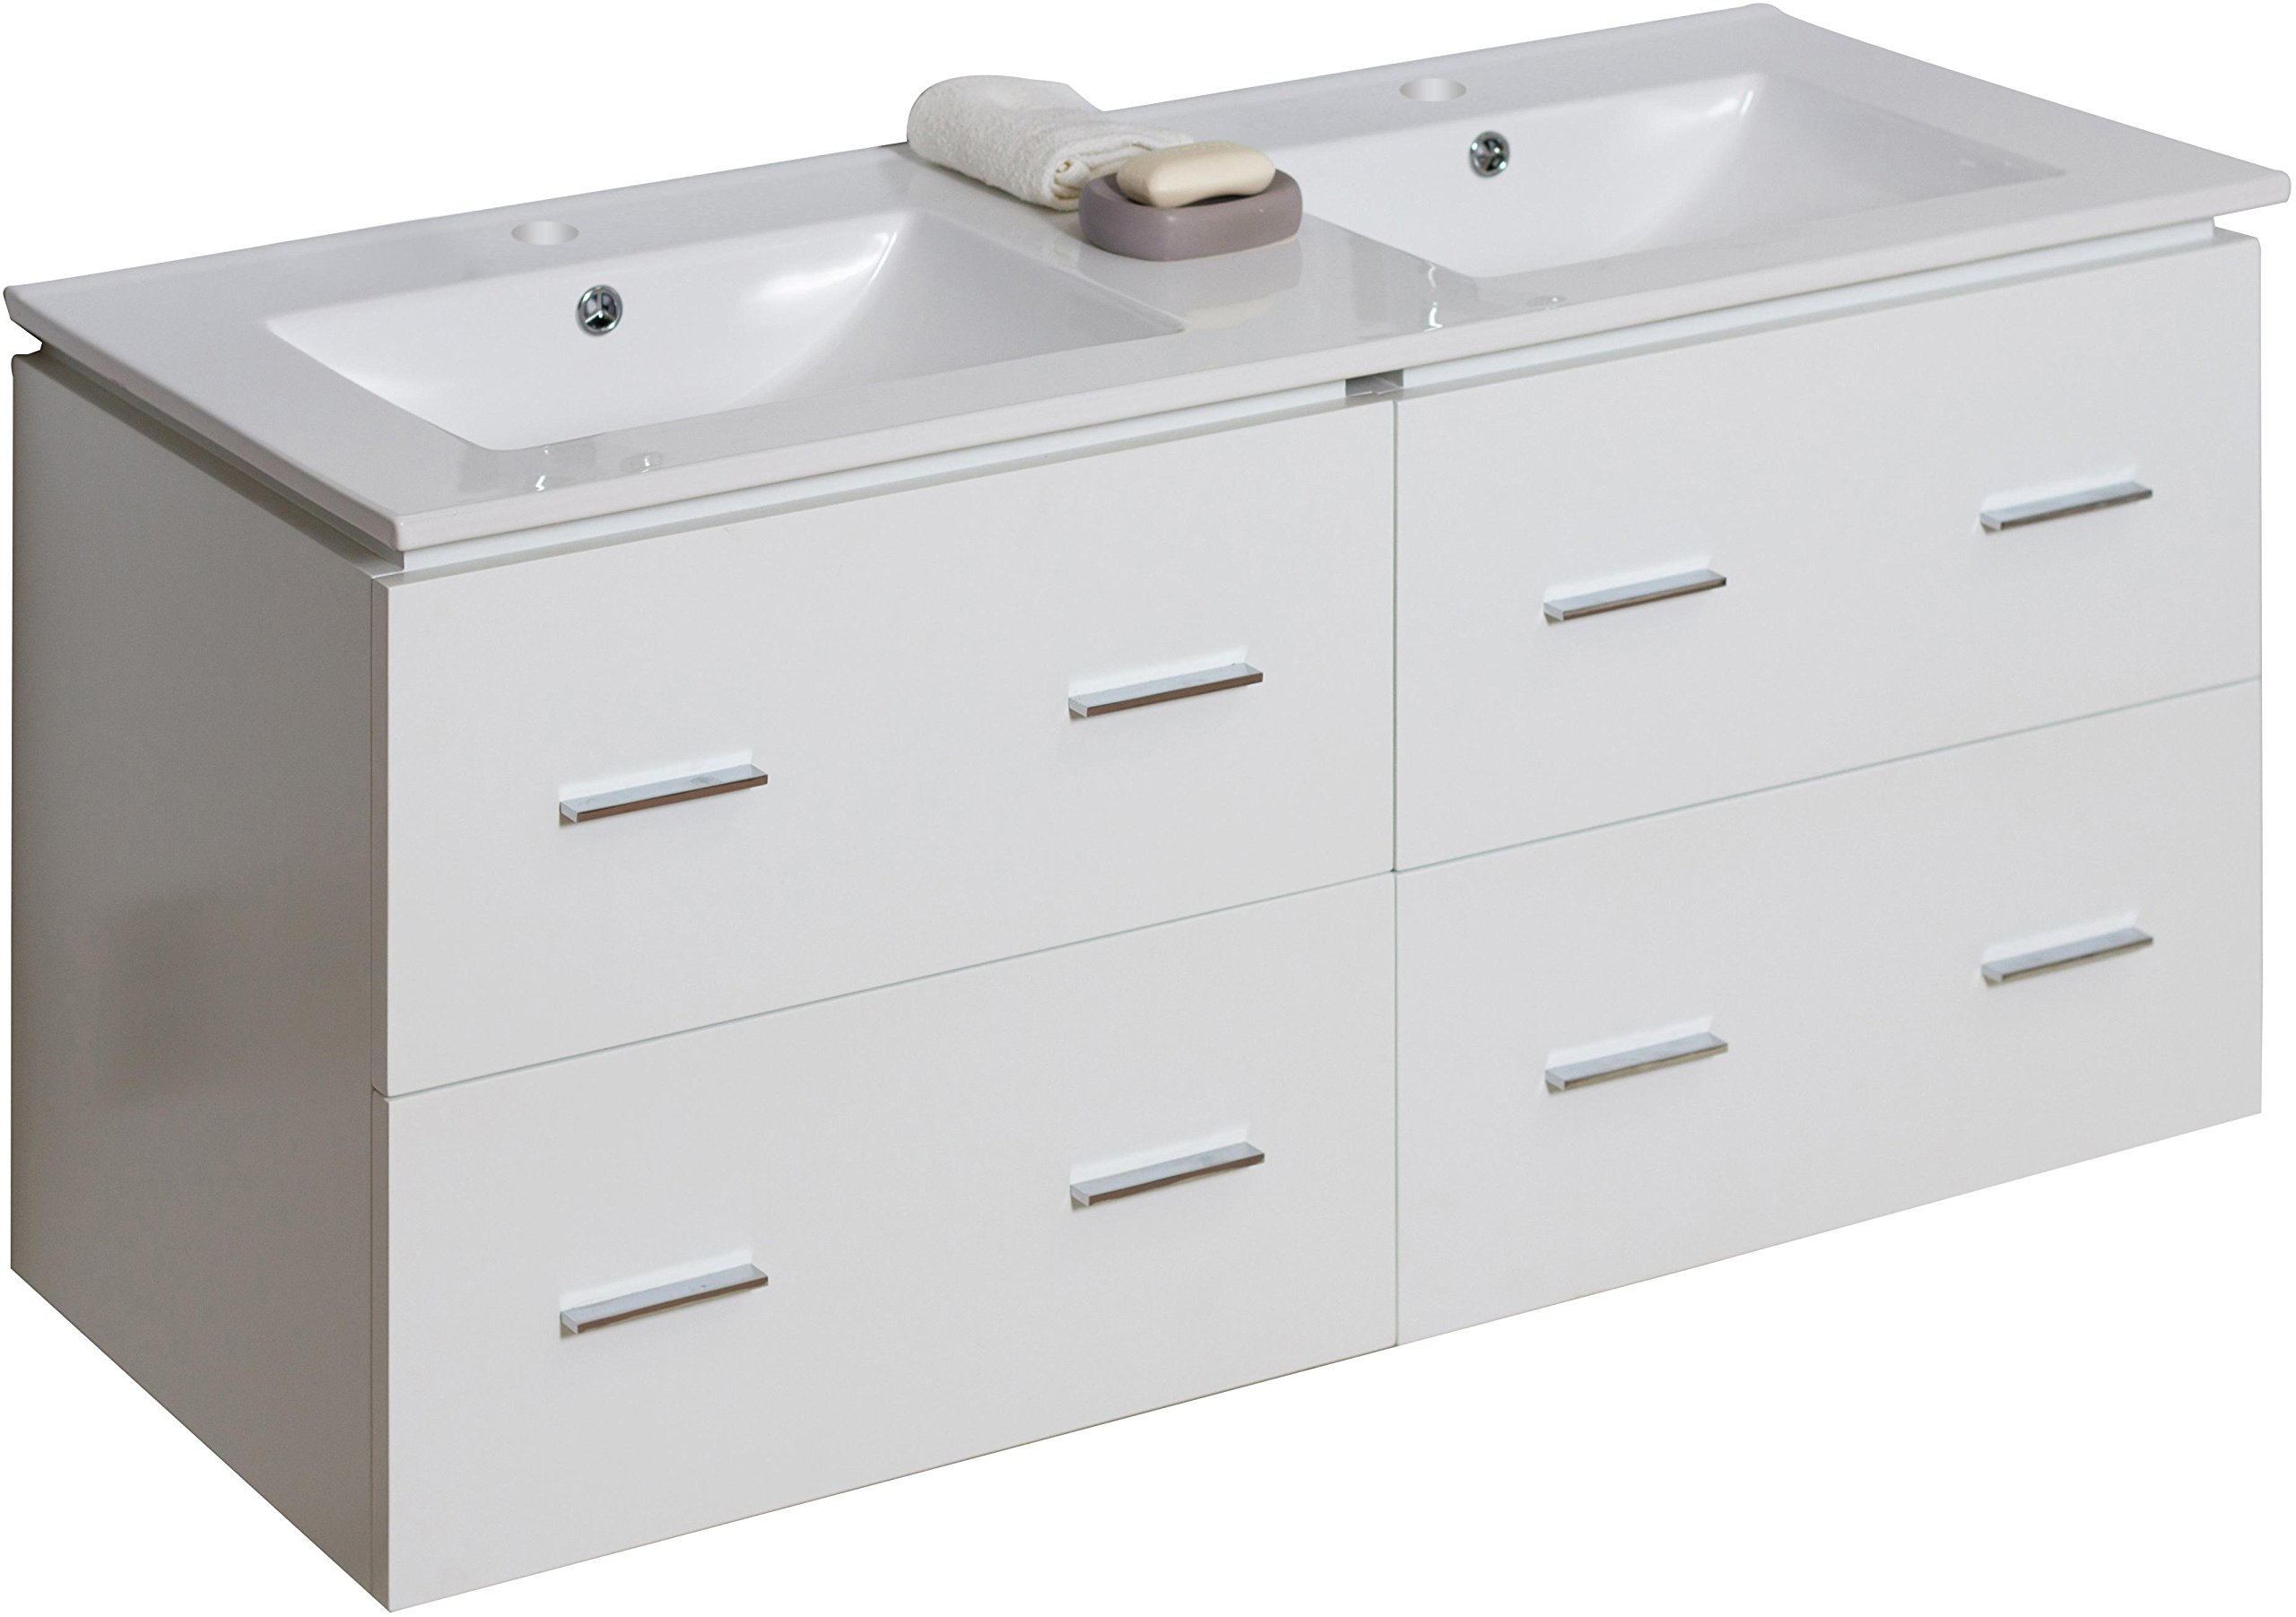 American Imaginations 741   48-Inch W X 18-Inch D Wall Mount Glossy White Vanity with White Double Sink Ceramic Top for Single Hole Faucets